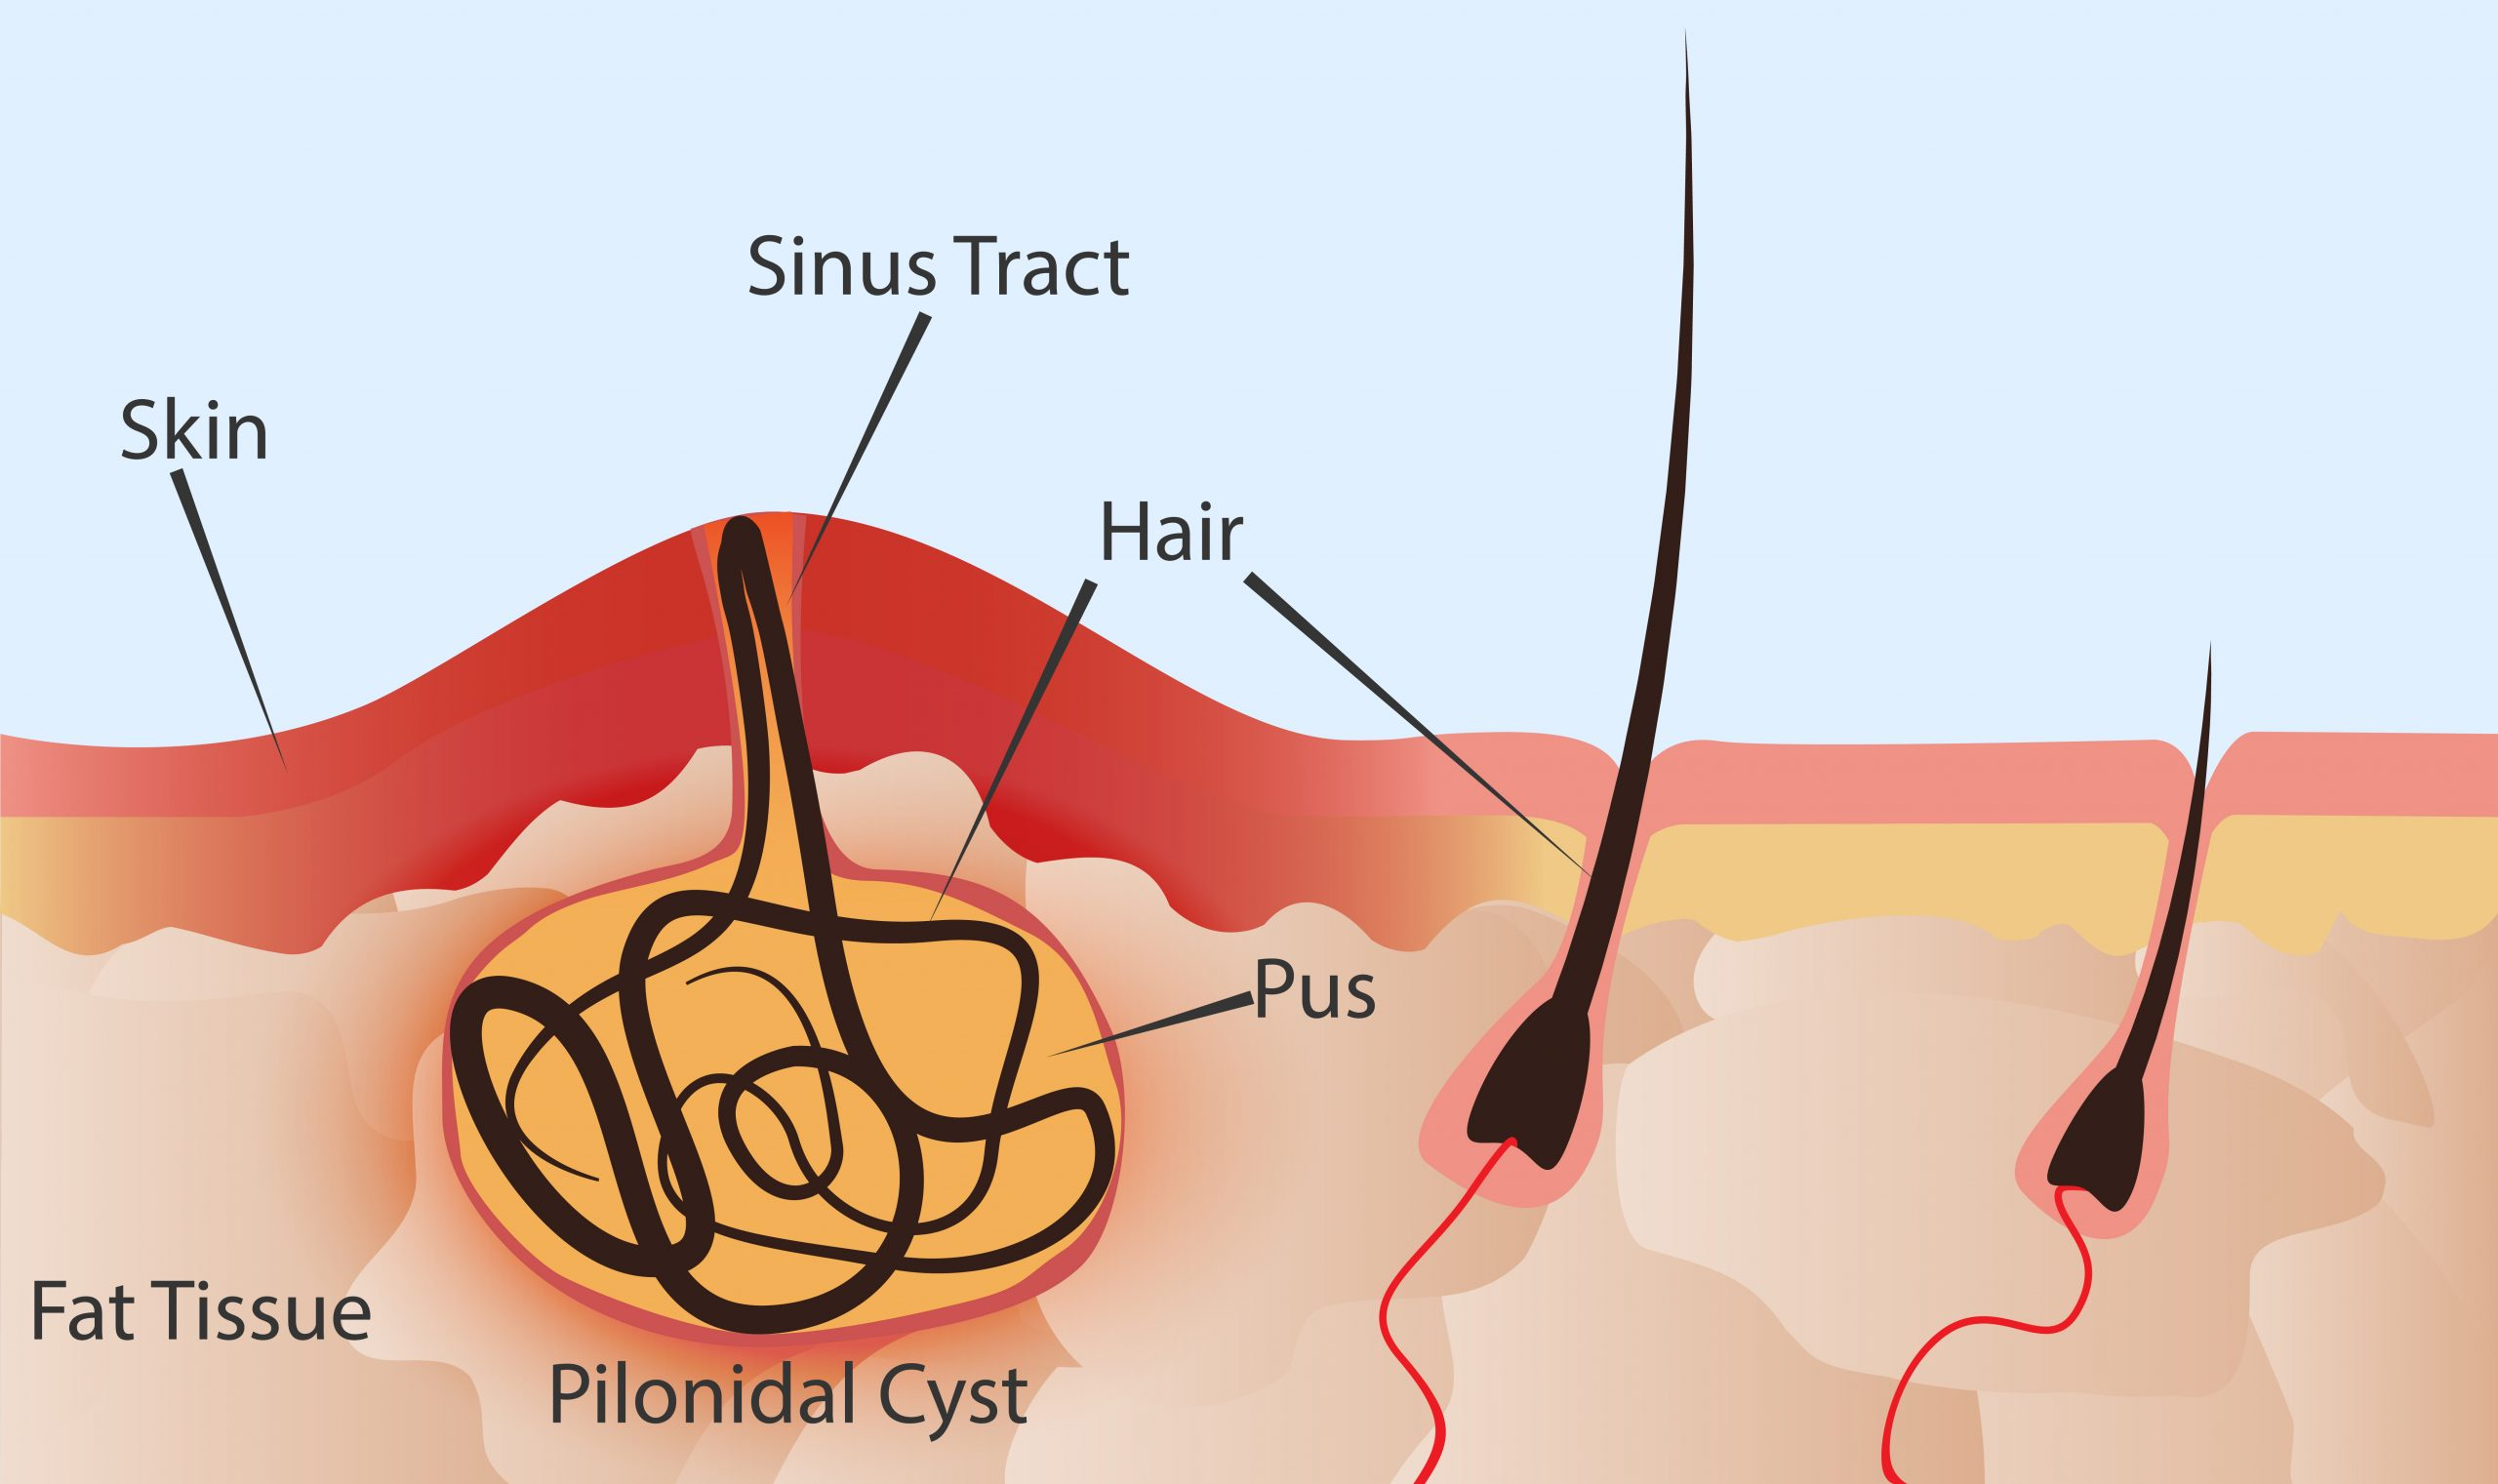 Anatomy of the skin and its relation to the development of a Pilonidal Cyst